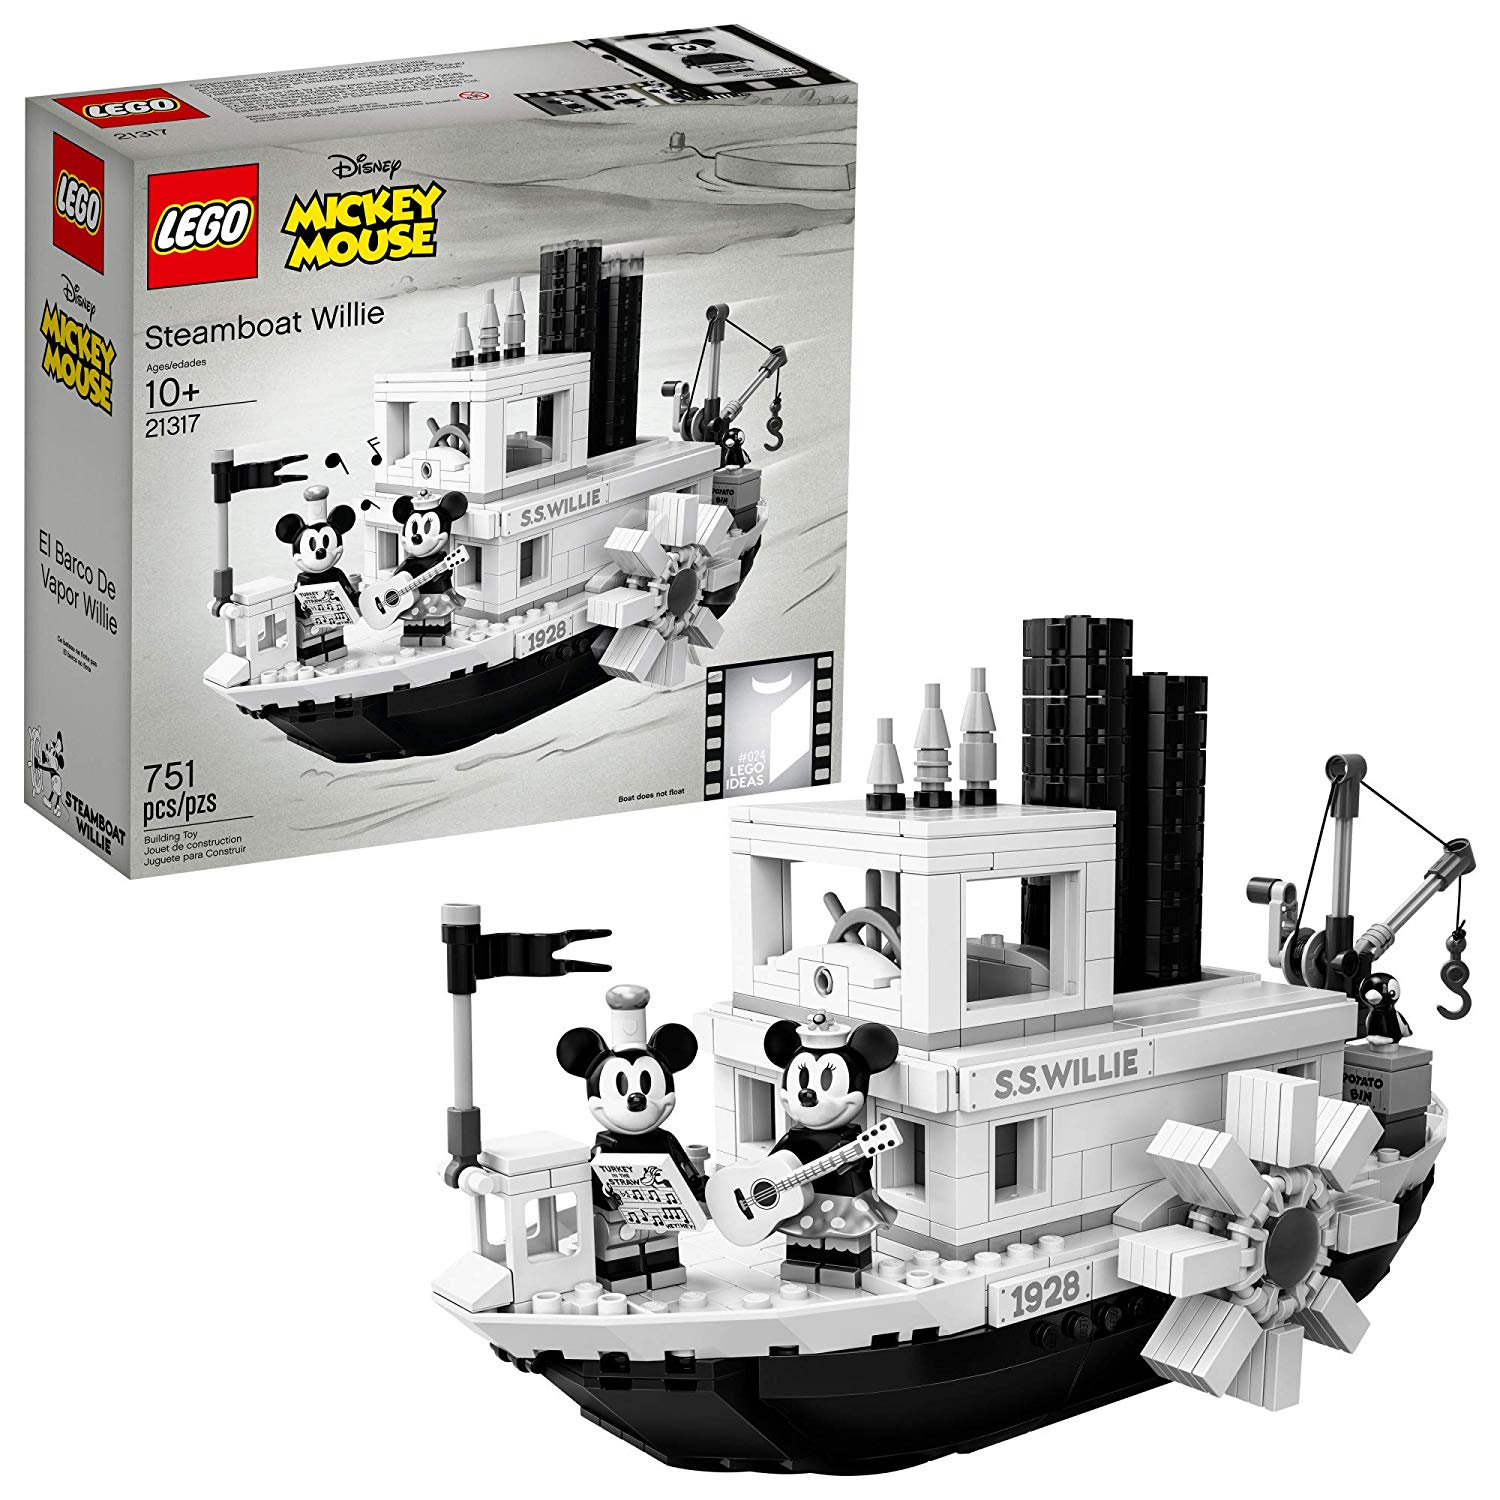 best lego sets mickey mouse steamboat willie